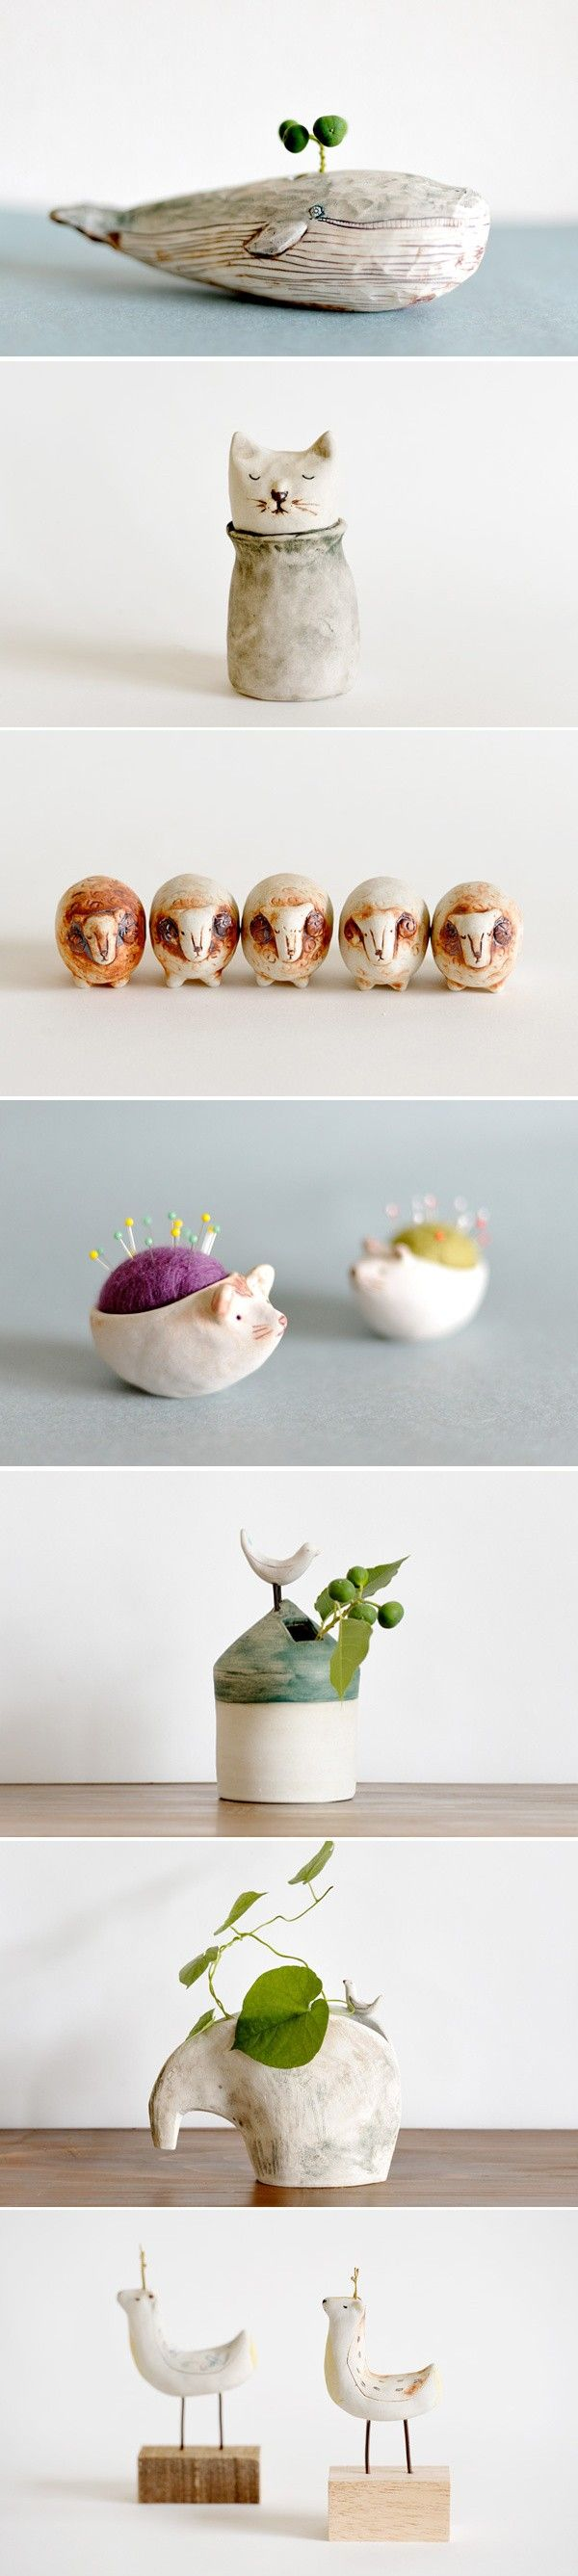 couple good ideas here, make clay sculpture for vase, or pincushion with felted…